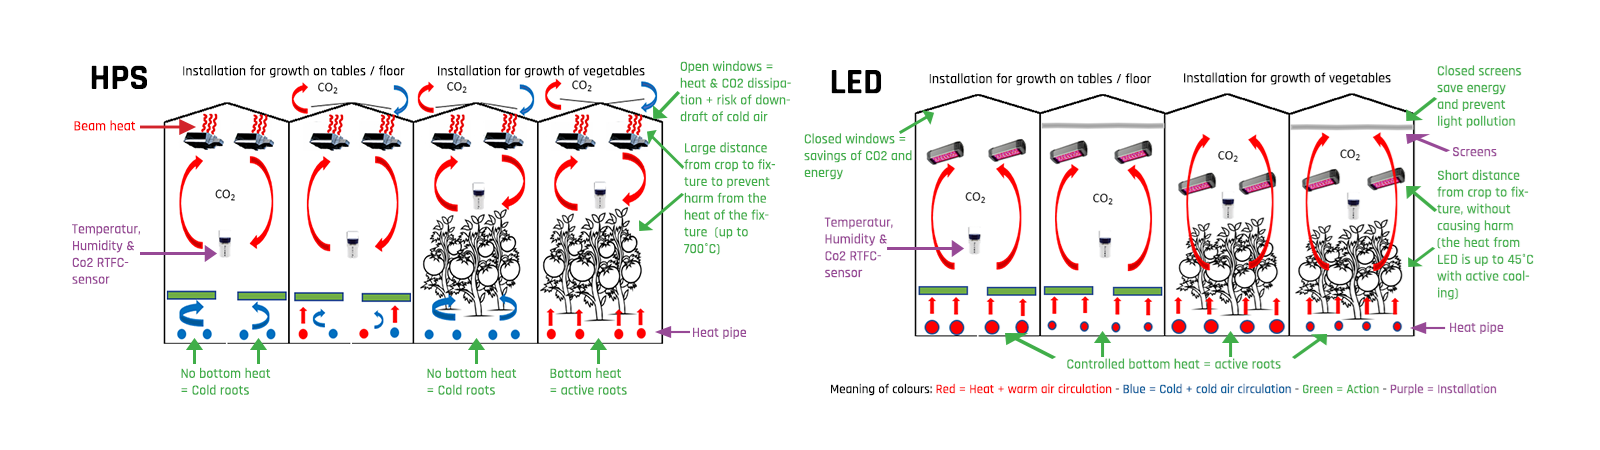 HPS vs LED - tradition vs future-proofing